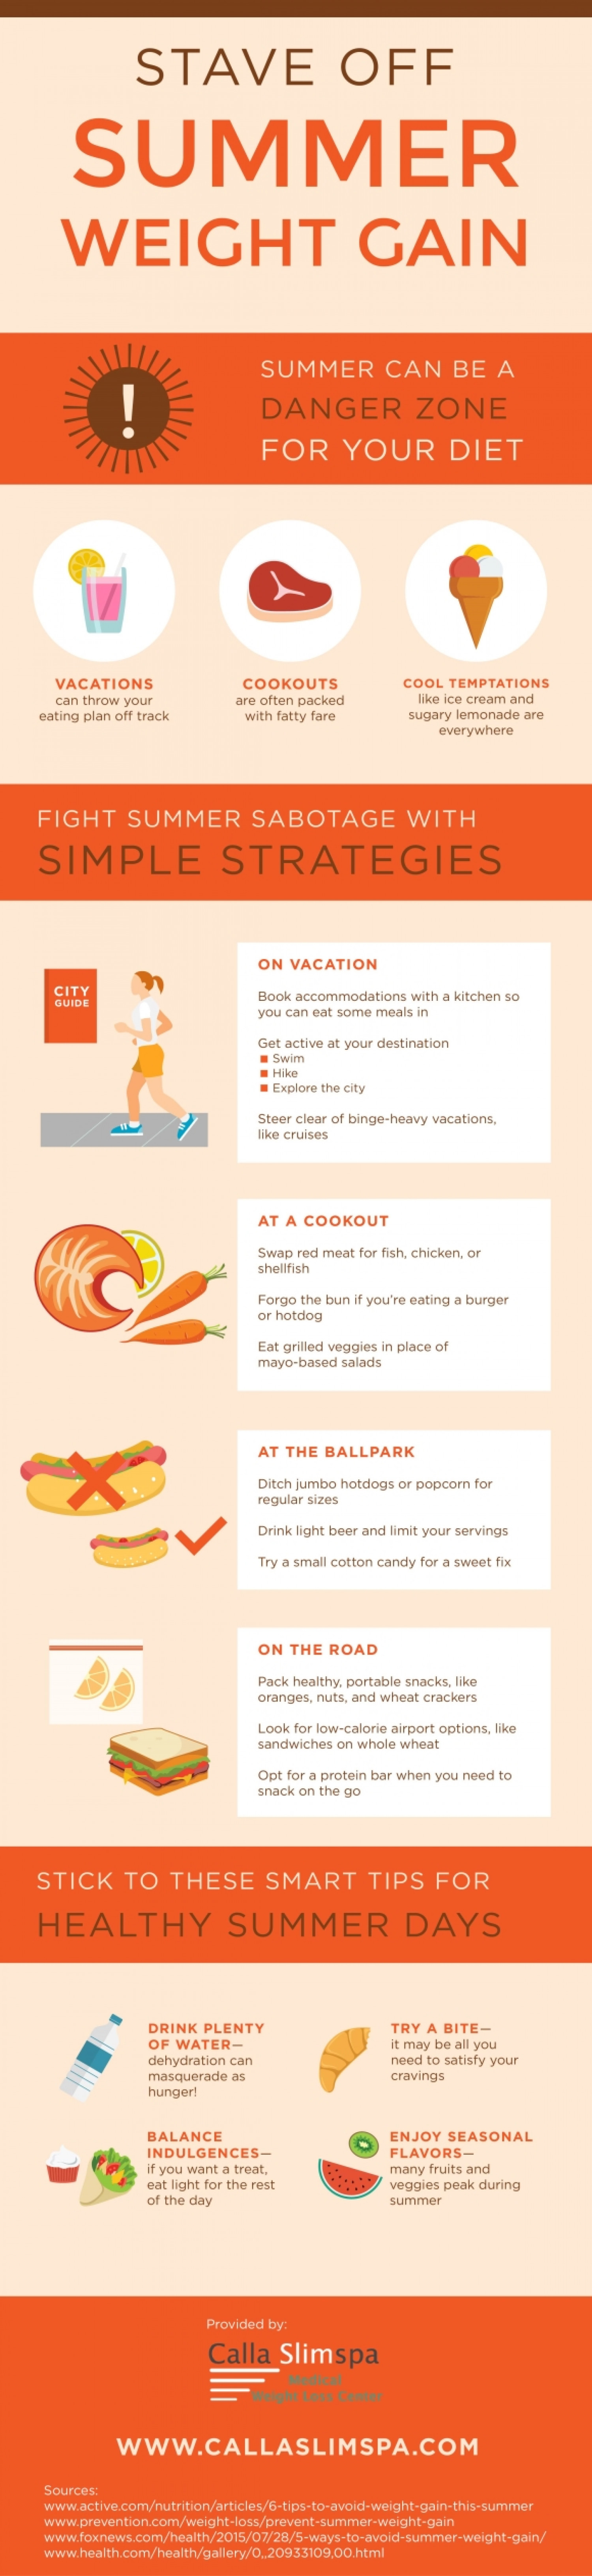 Stave Off Summer Weight Gain Infographic